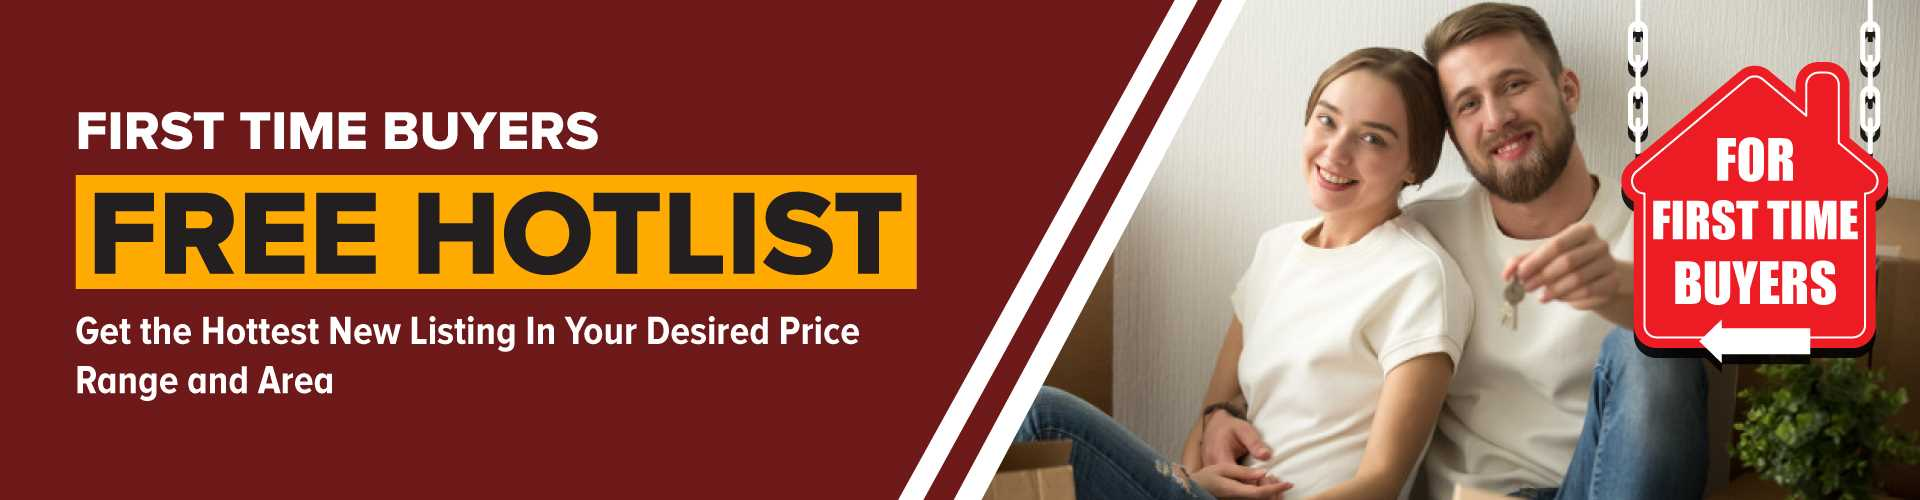 Hotlist for First Time Buyers Image